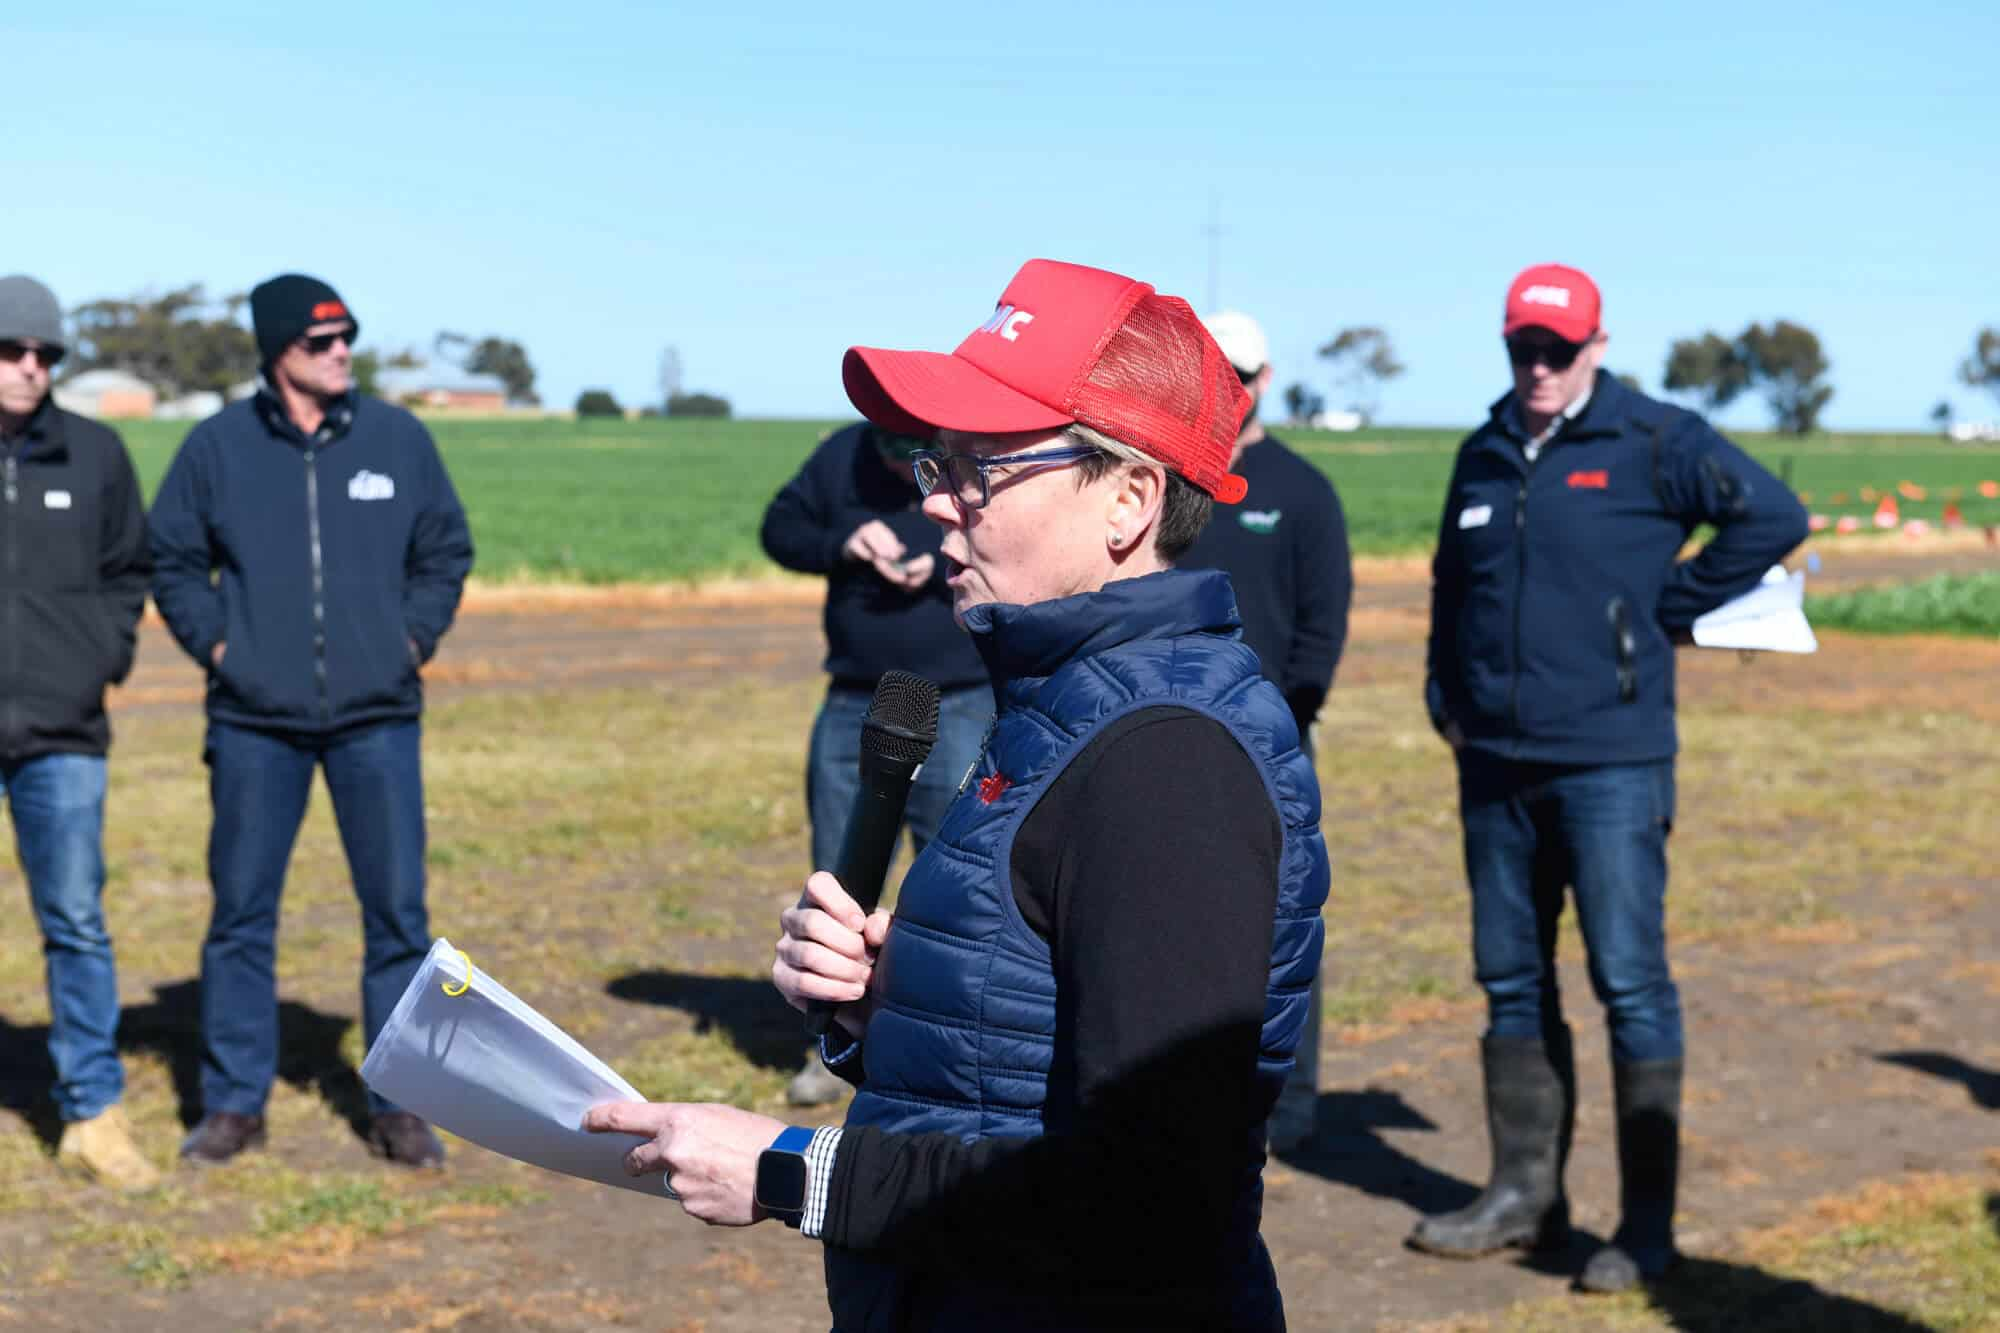 FMC Roseworthy Field Day Simonne Read, Aug, 2019